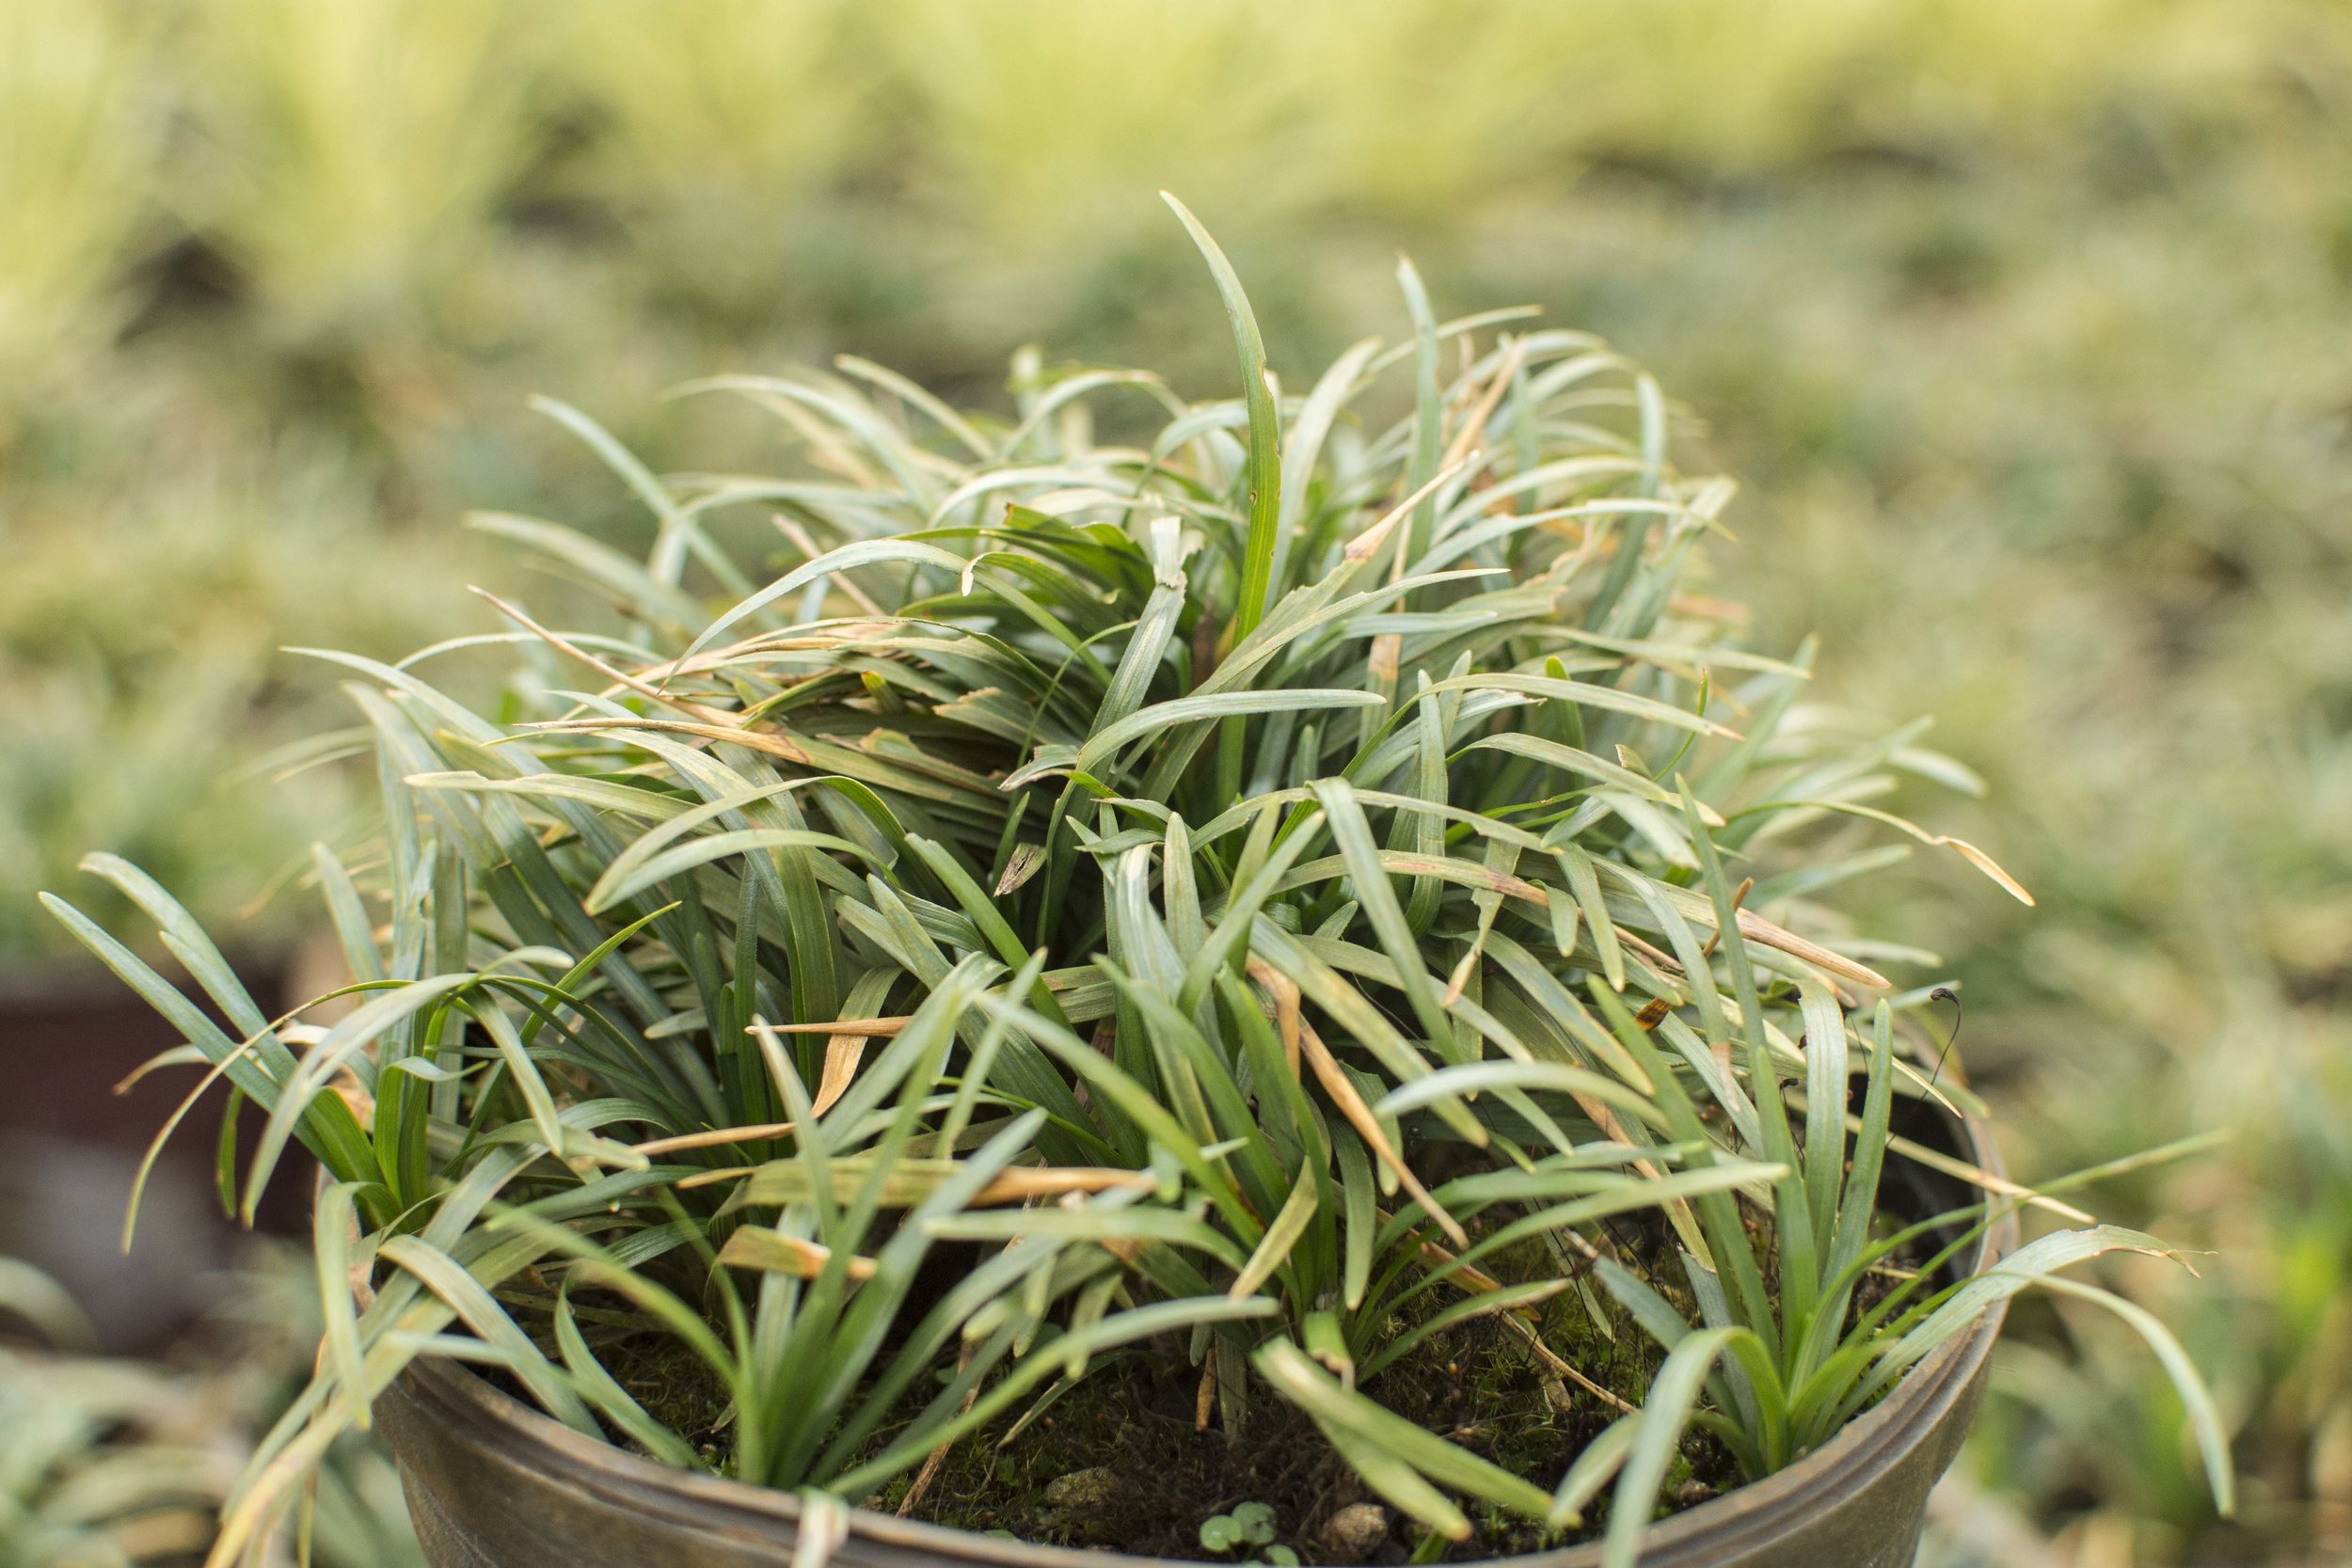 OPHIOPOGON japonicus 'Nanus''Japanese DwarfMondo Grass'Low Height - Dense dark green dwarf grass that works great as a ground cover. Slow growing, easy care.Mature size: 4-6